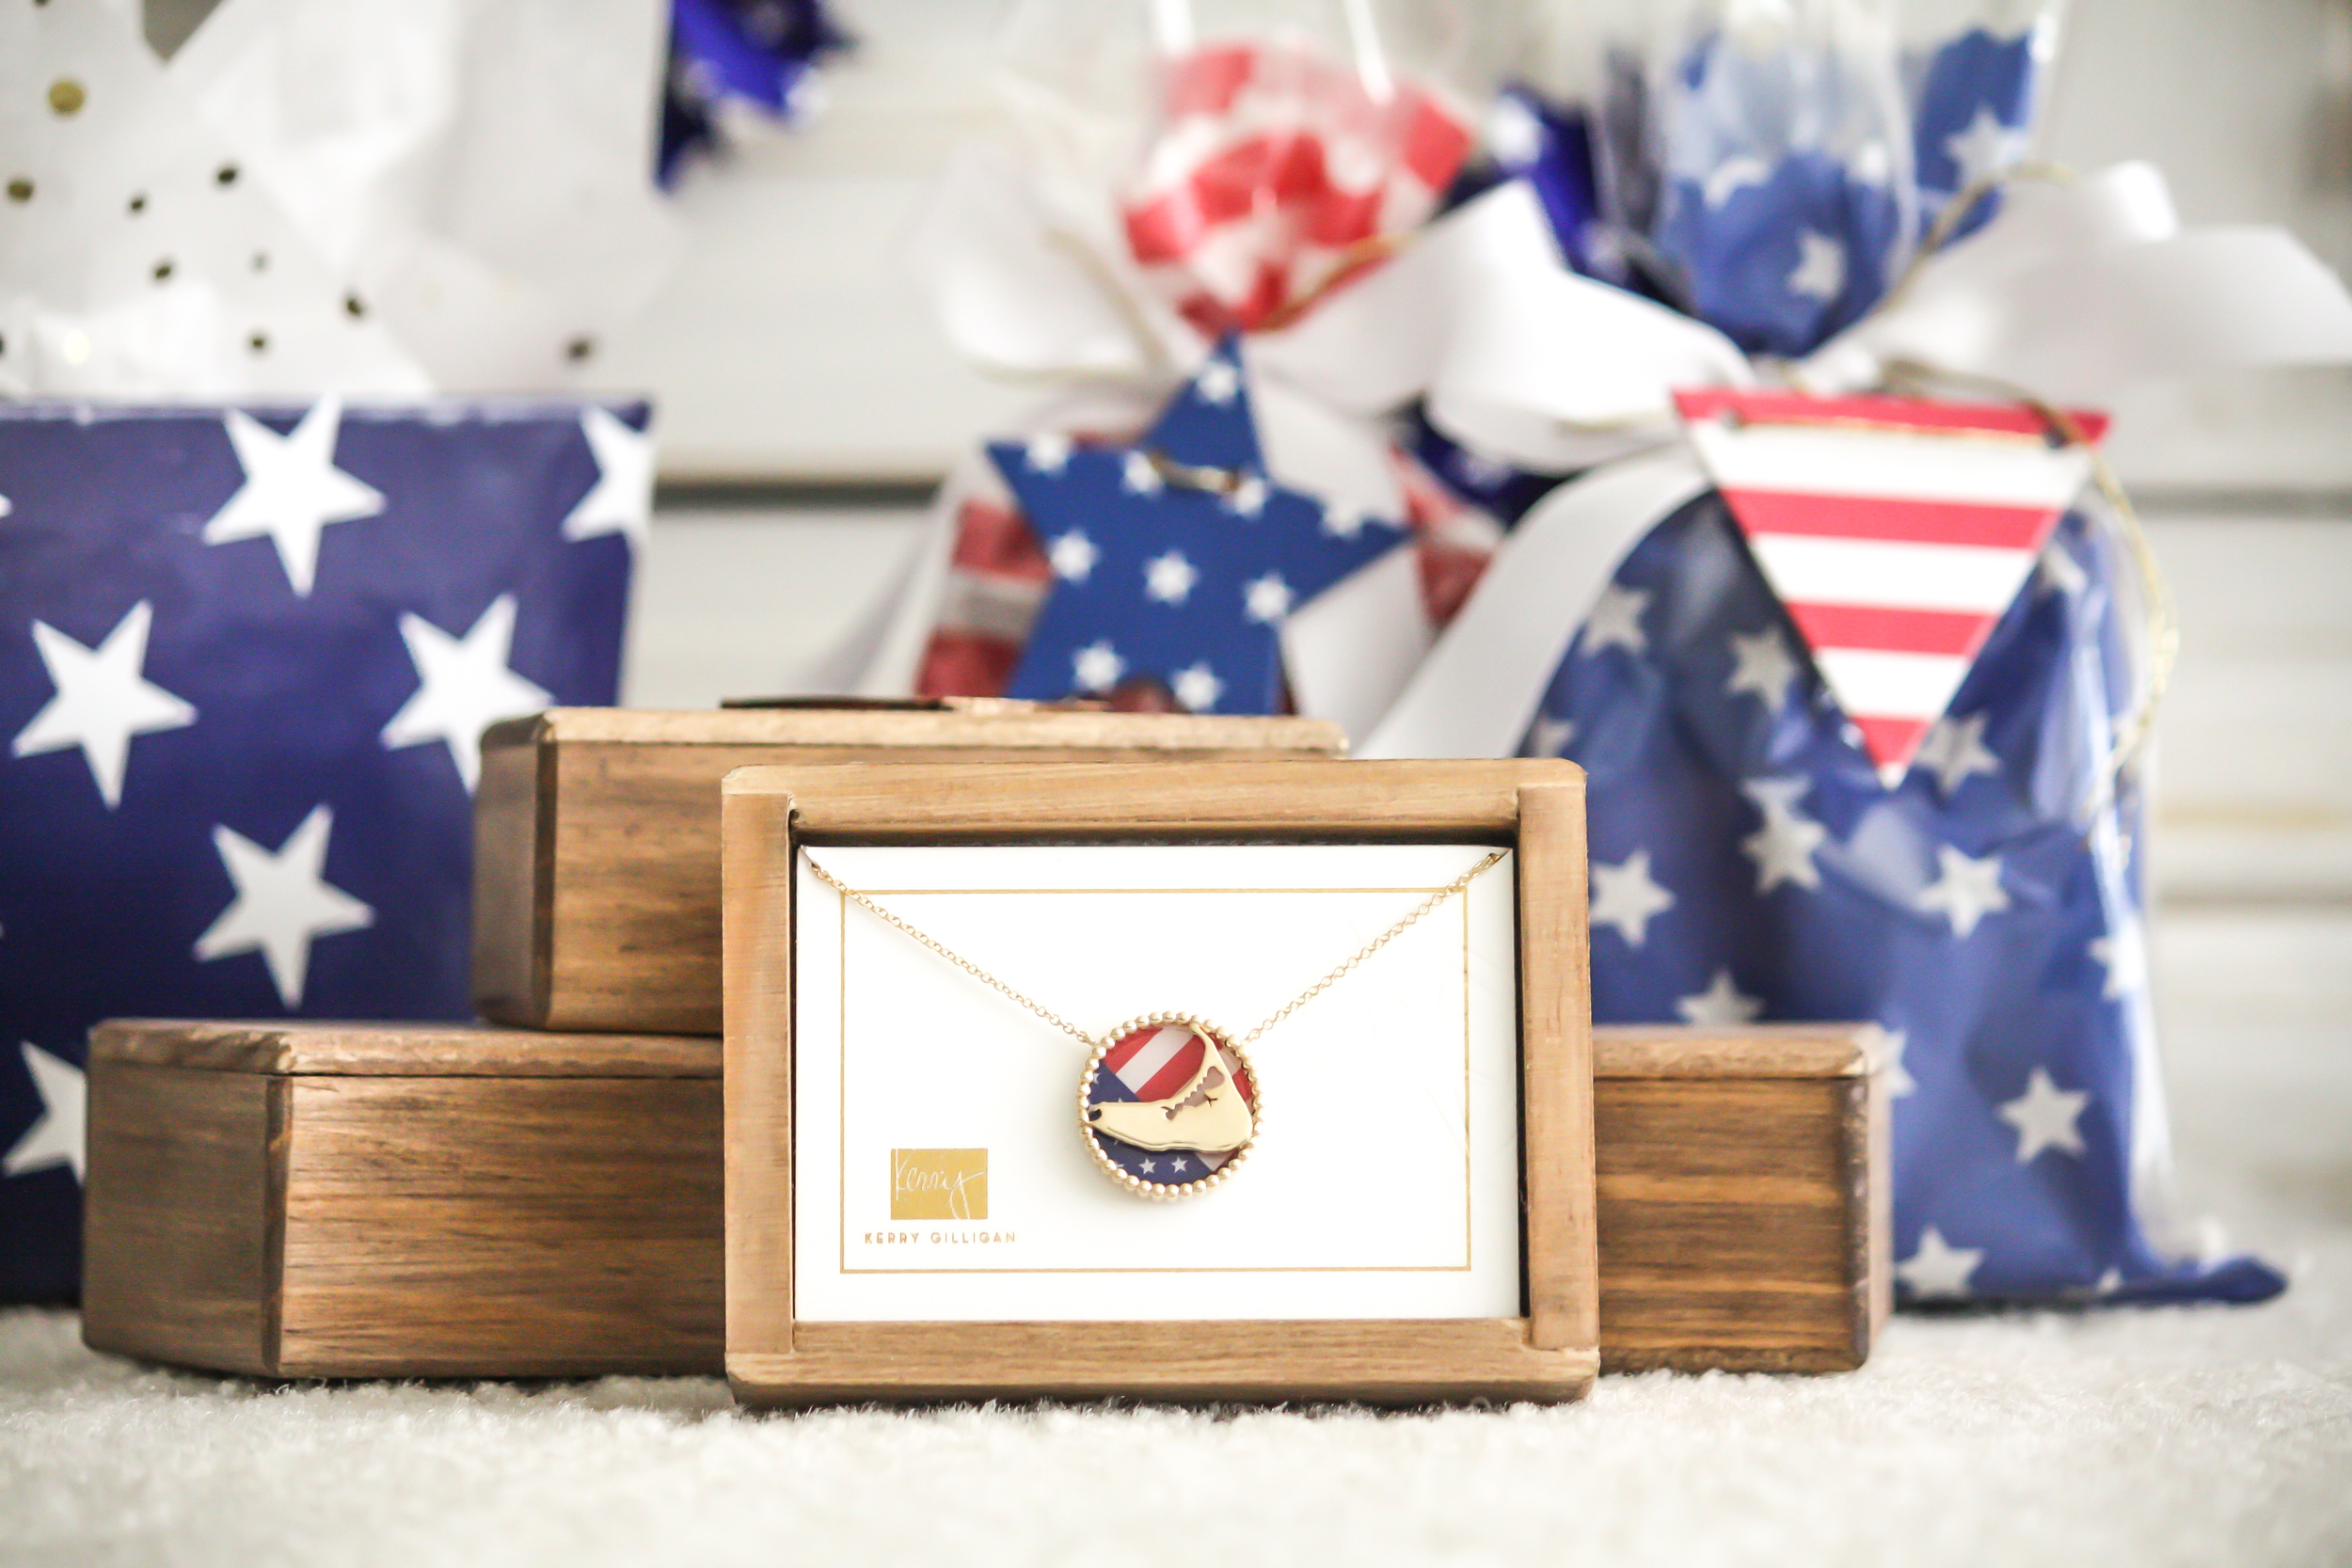 Nantucket Interchangeable Necklace by Kerry Gilligan with 4th of July American Flag Insert